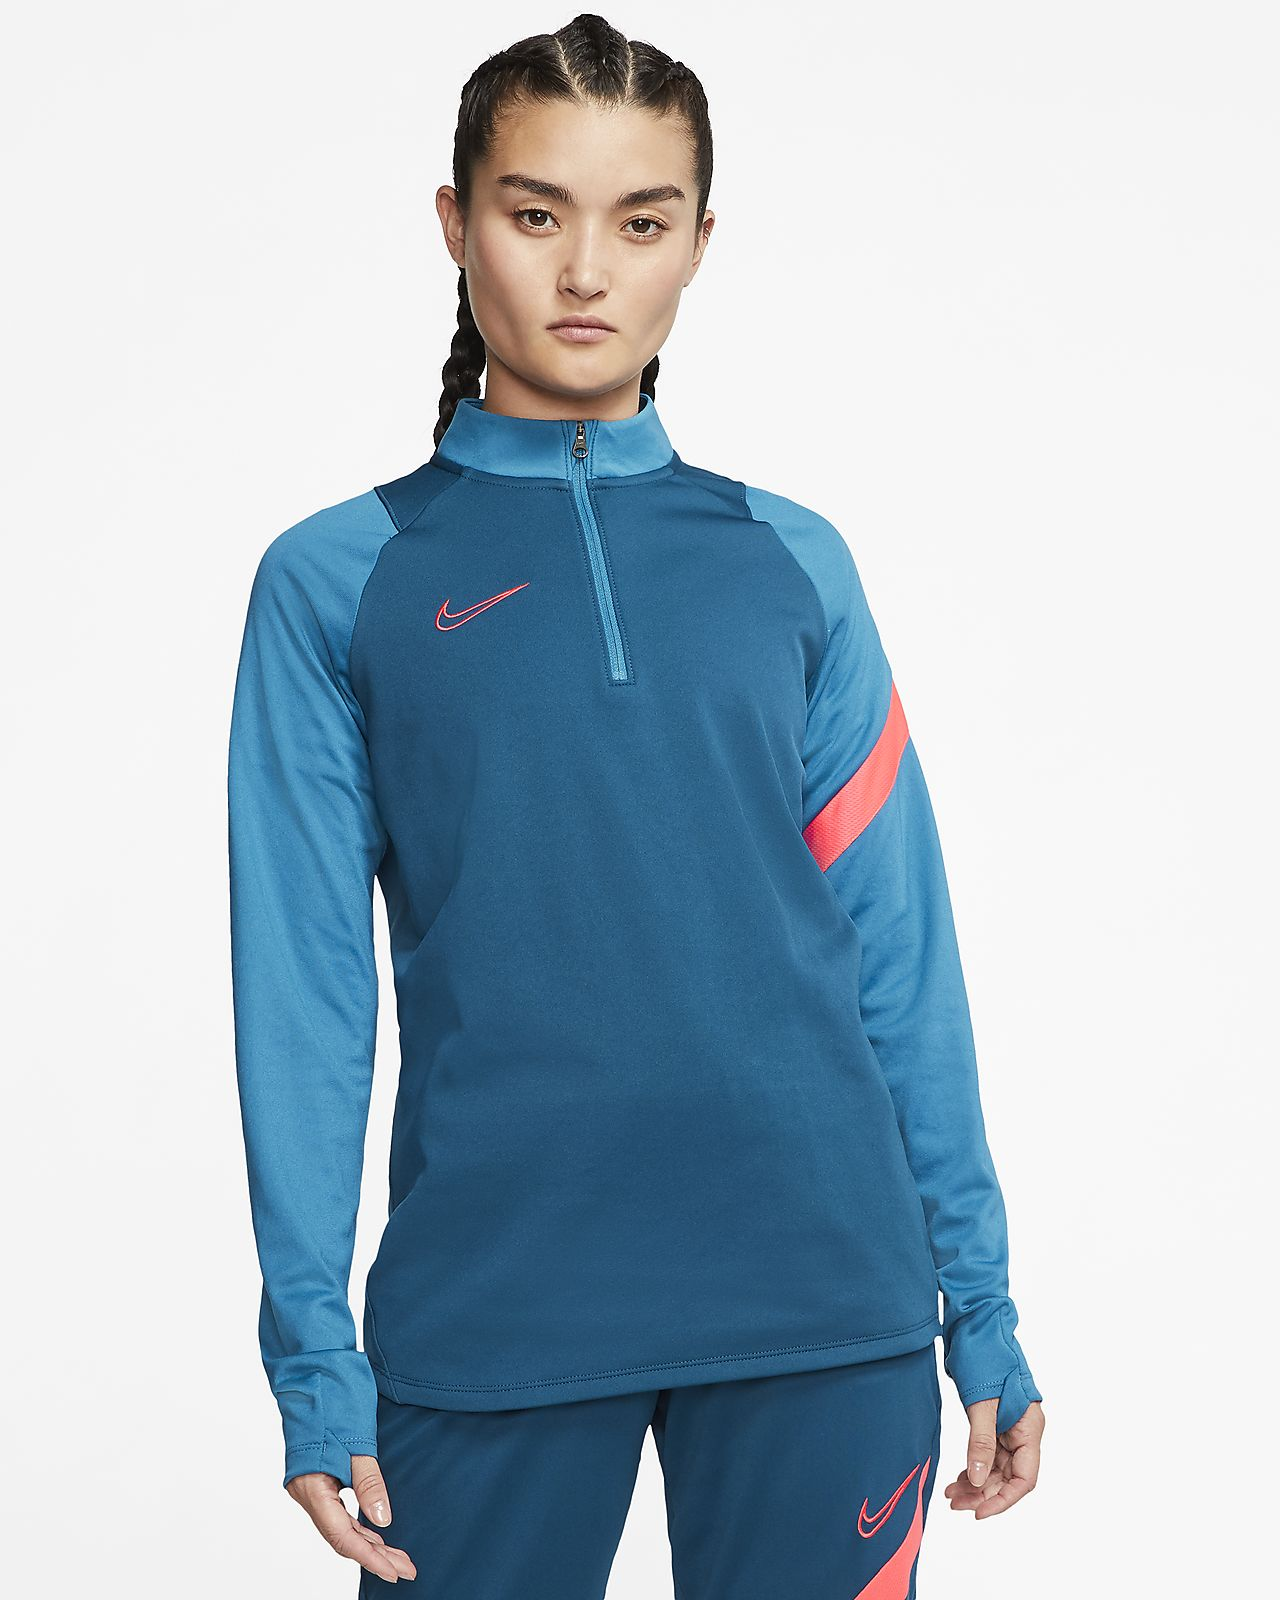 Nike Dri-FIT Academy Pro Women's Football Drill Top